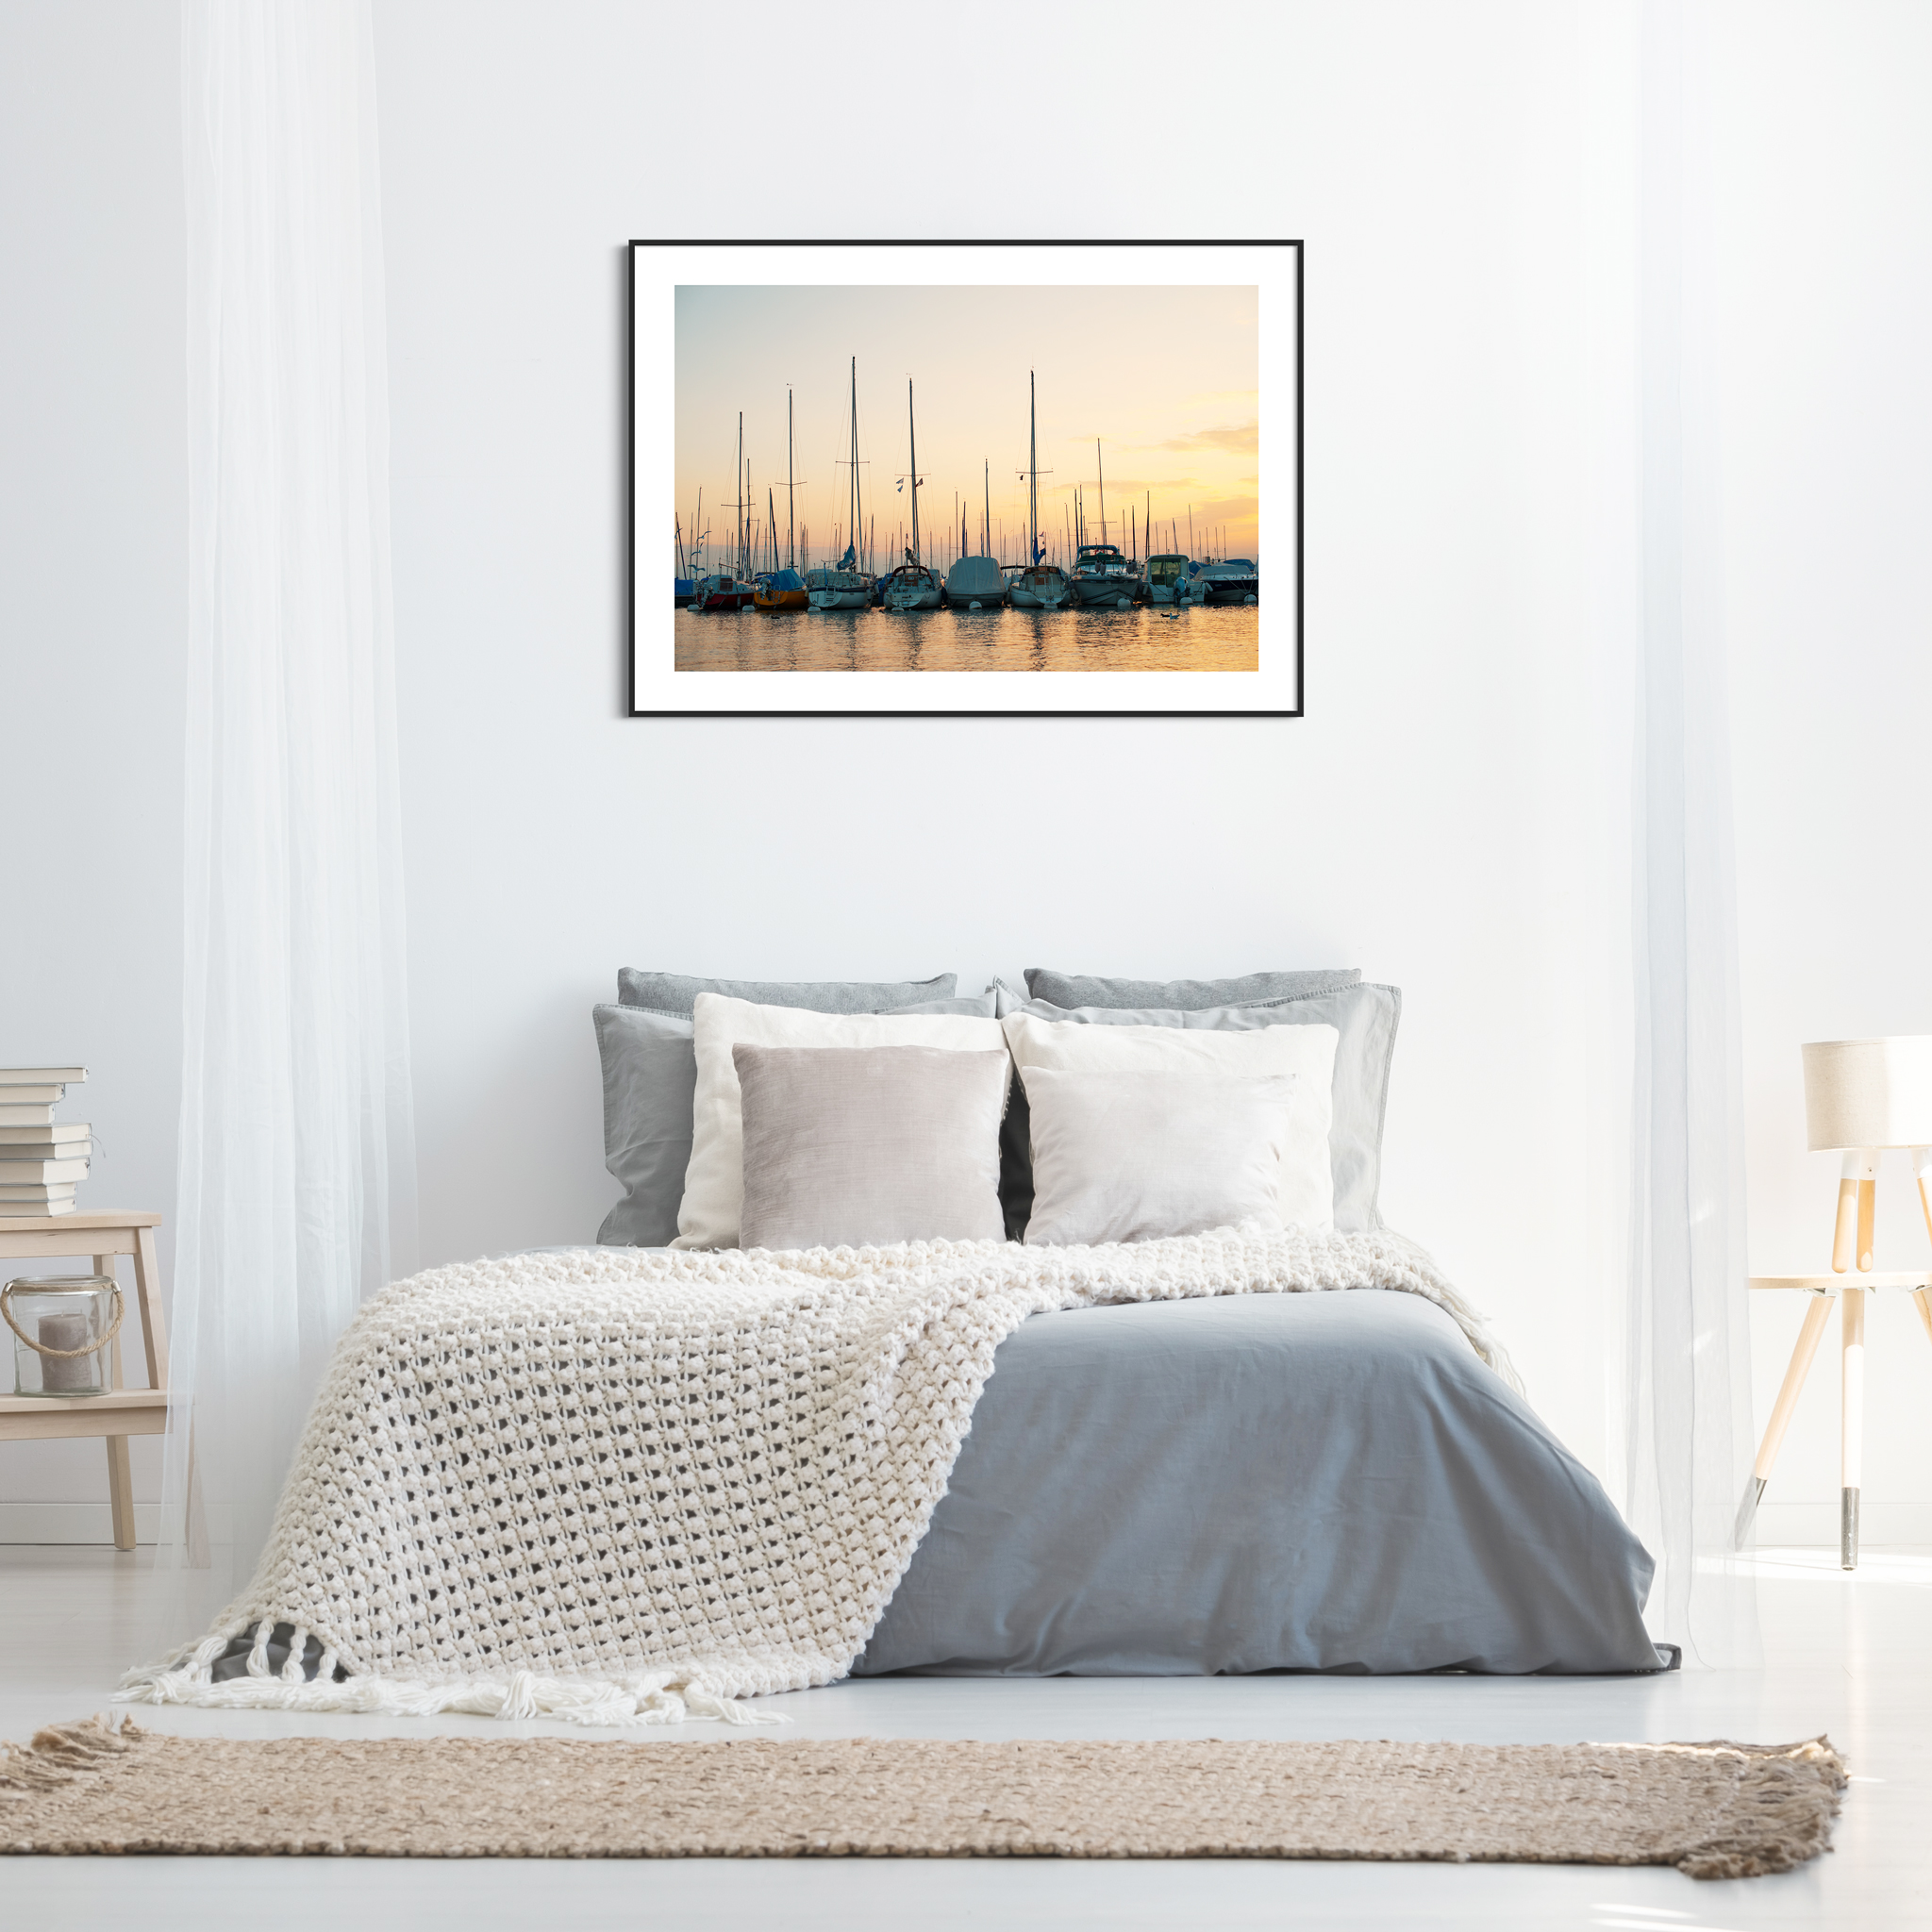 Sunset in Lausanne photography - color print with border in the black frame on the wall in the bedroom